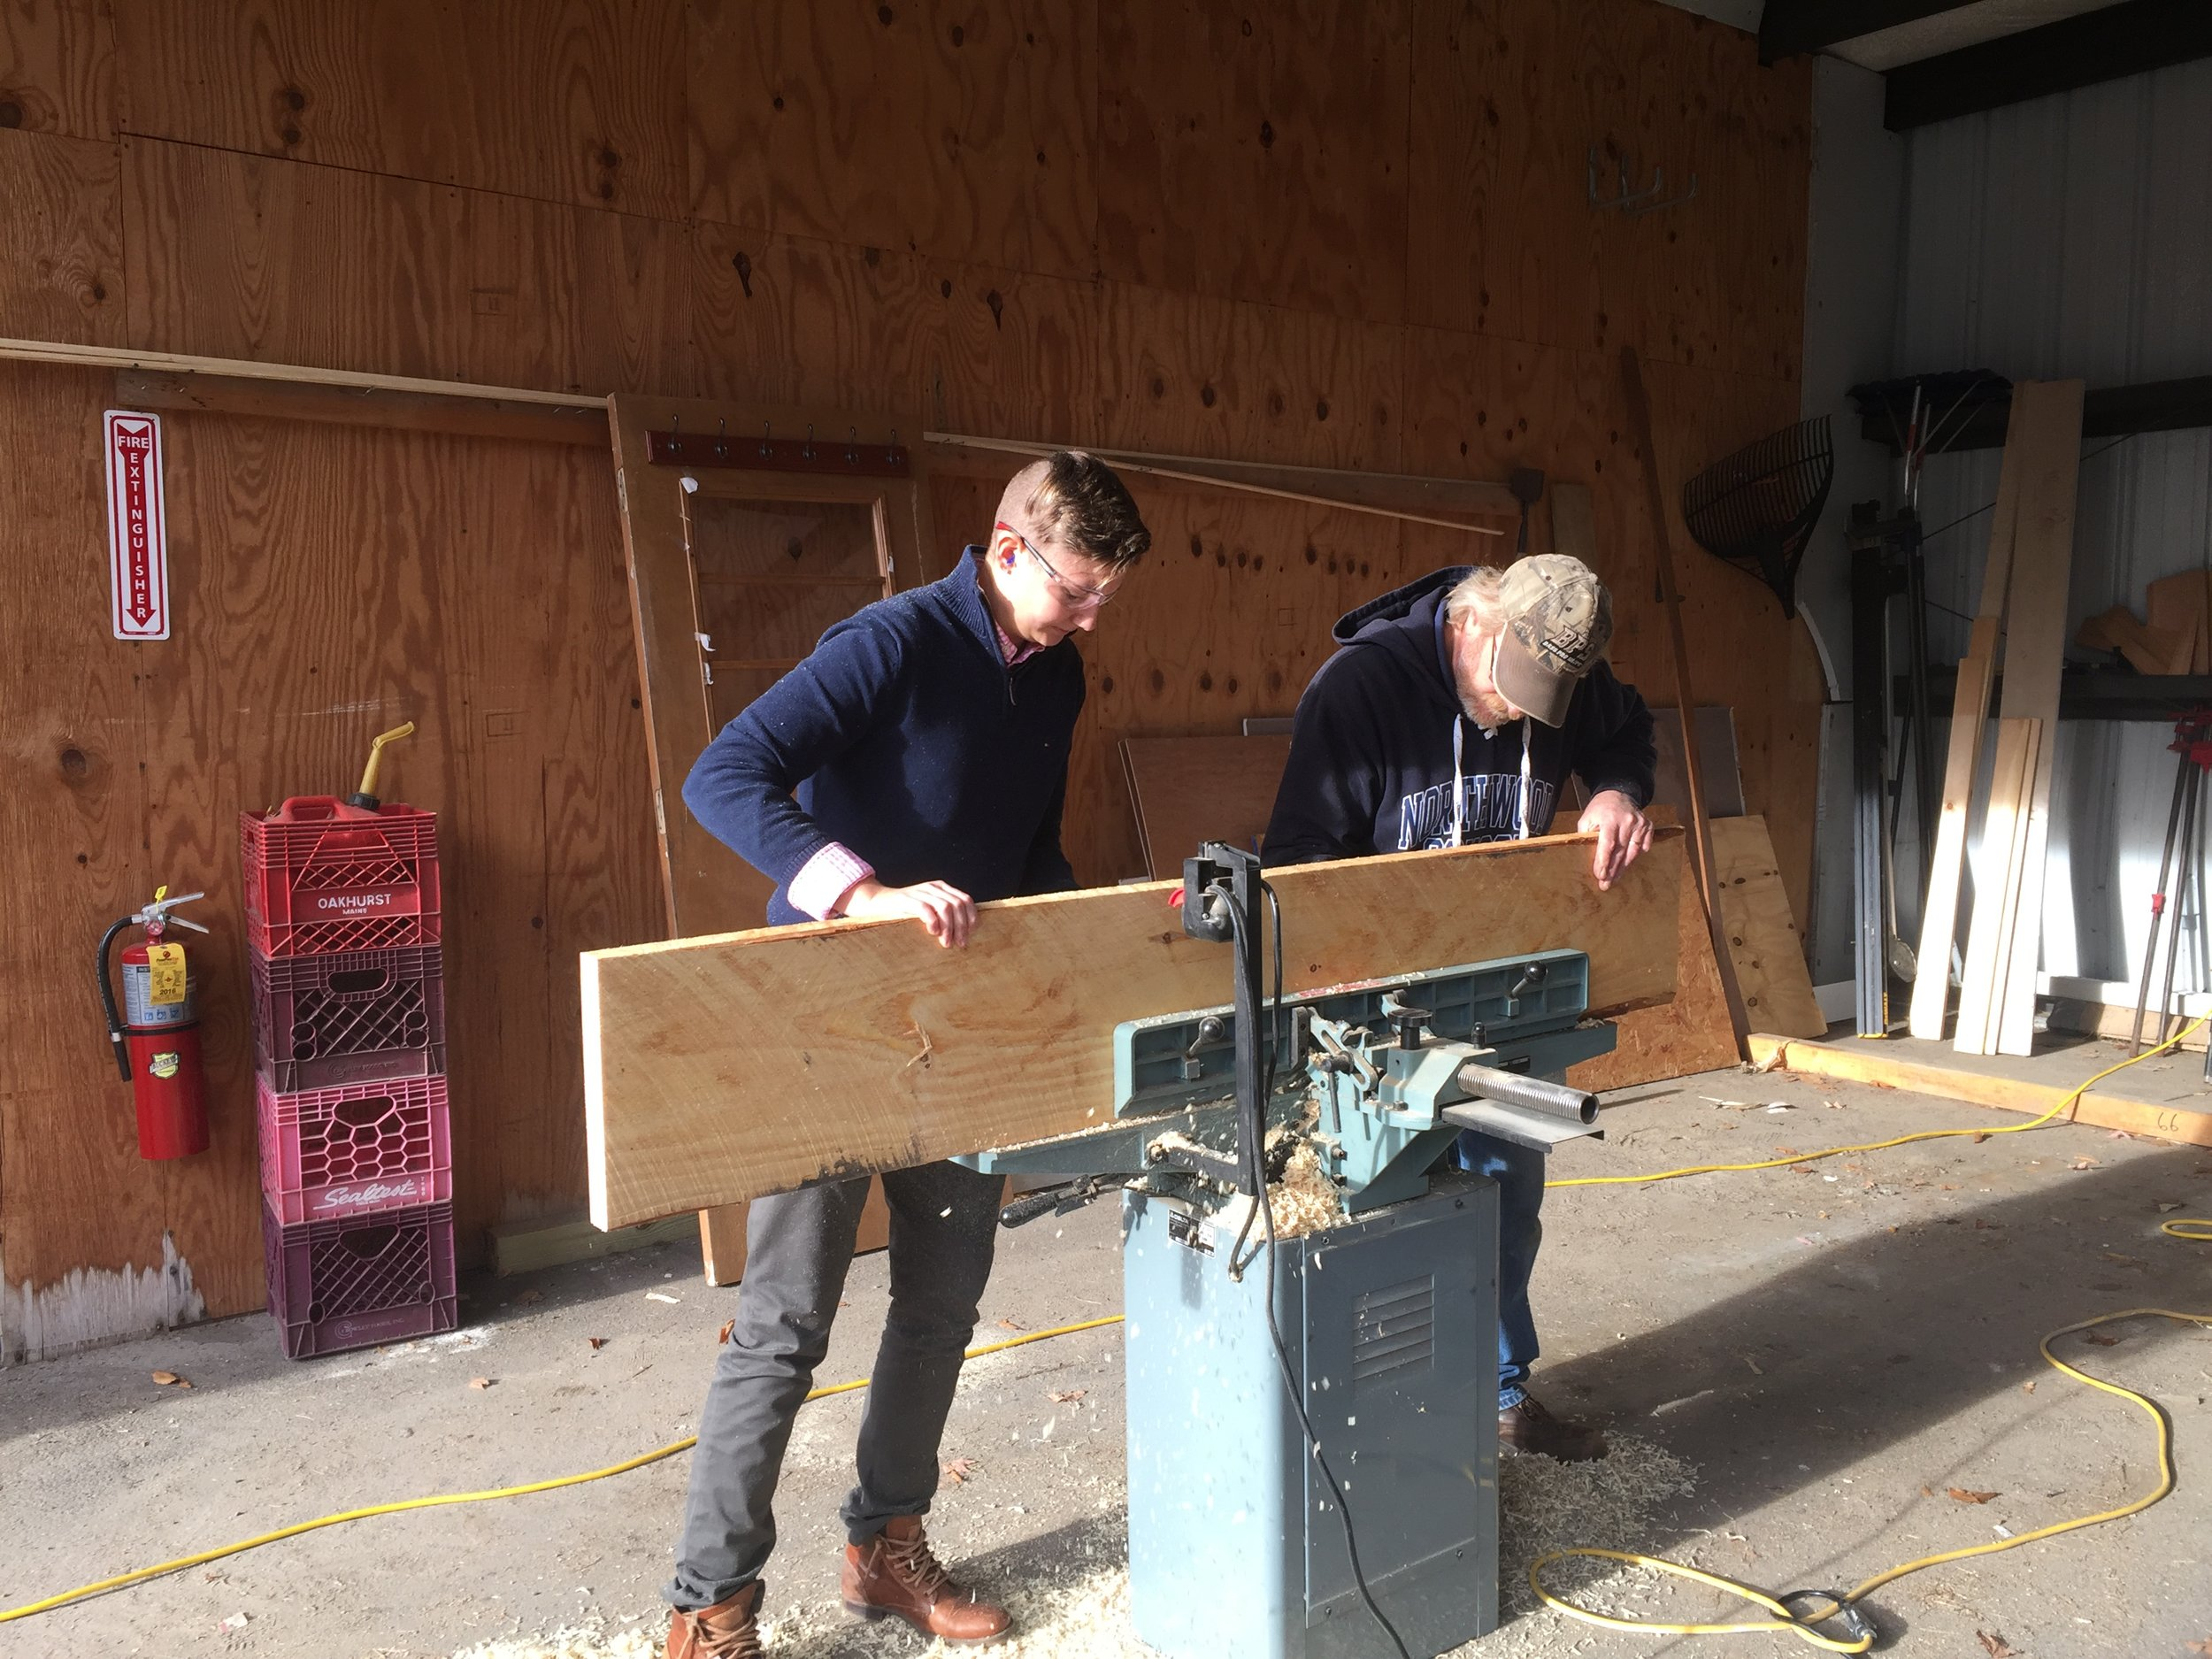 Hannah Rose learns how to plane the boards that would become the counter top on the center island tool organizer and workspace she helped design.